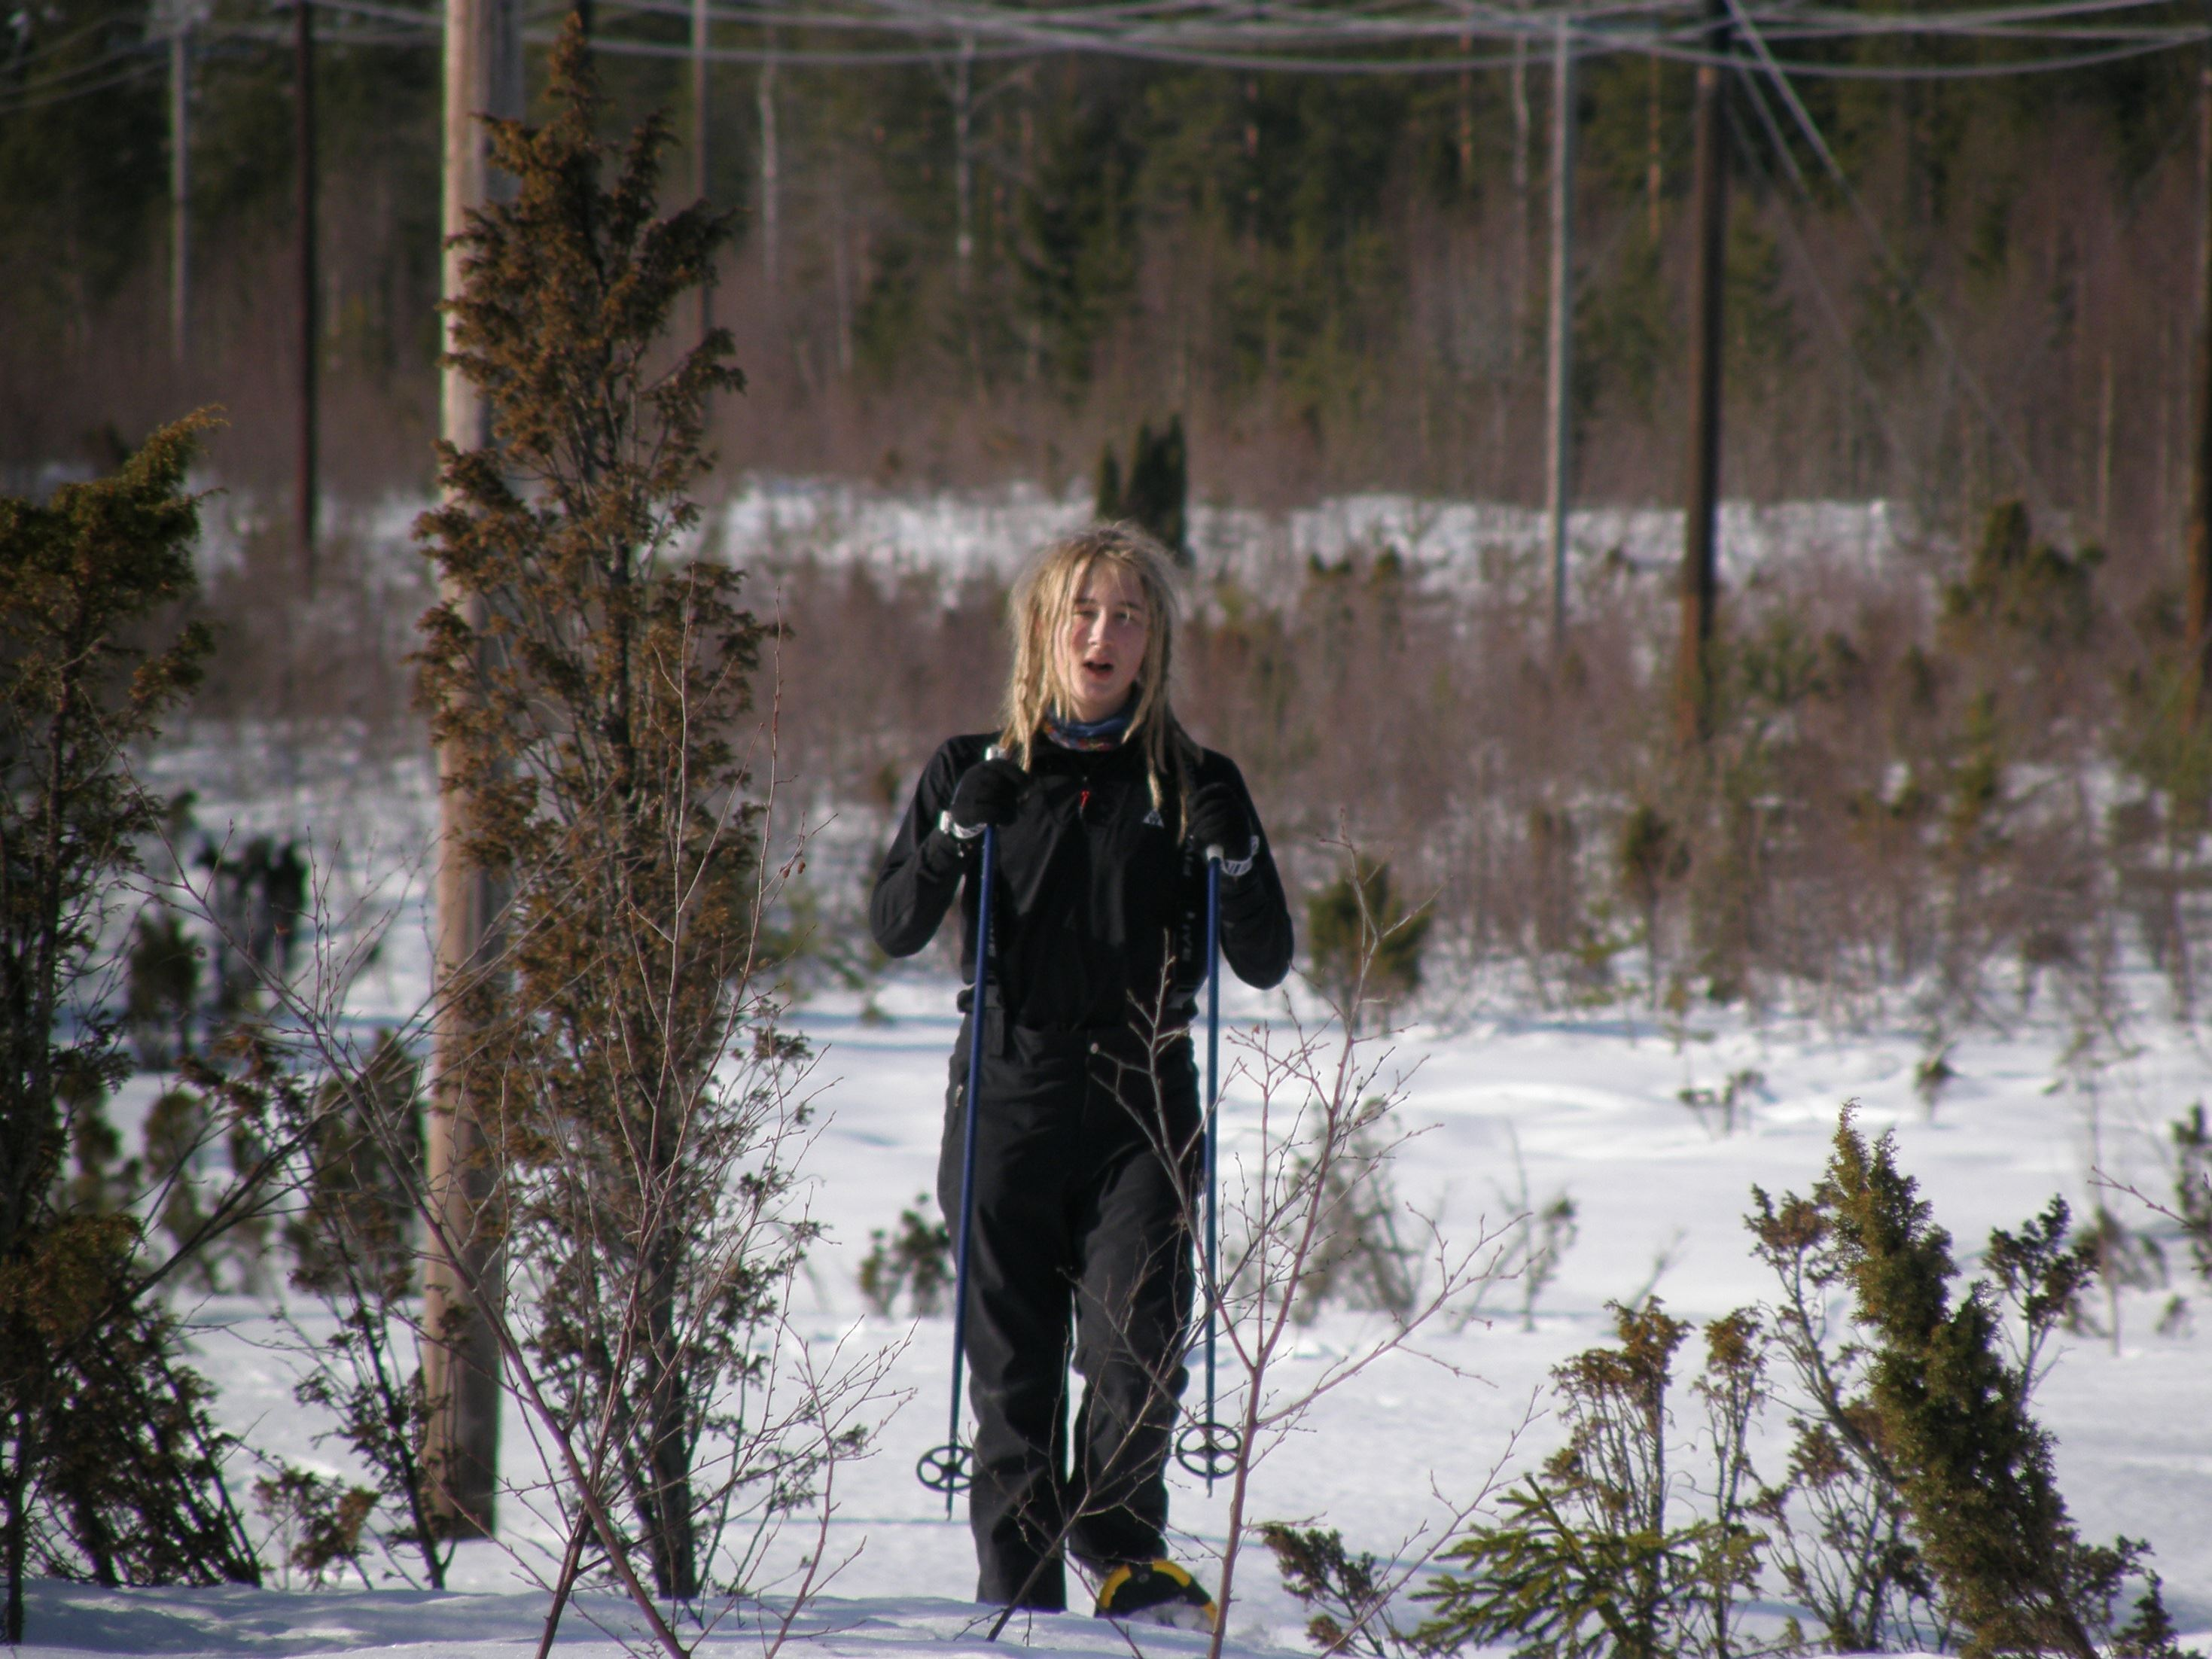 Snowshoe tour with guide